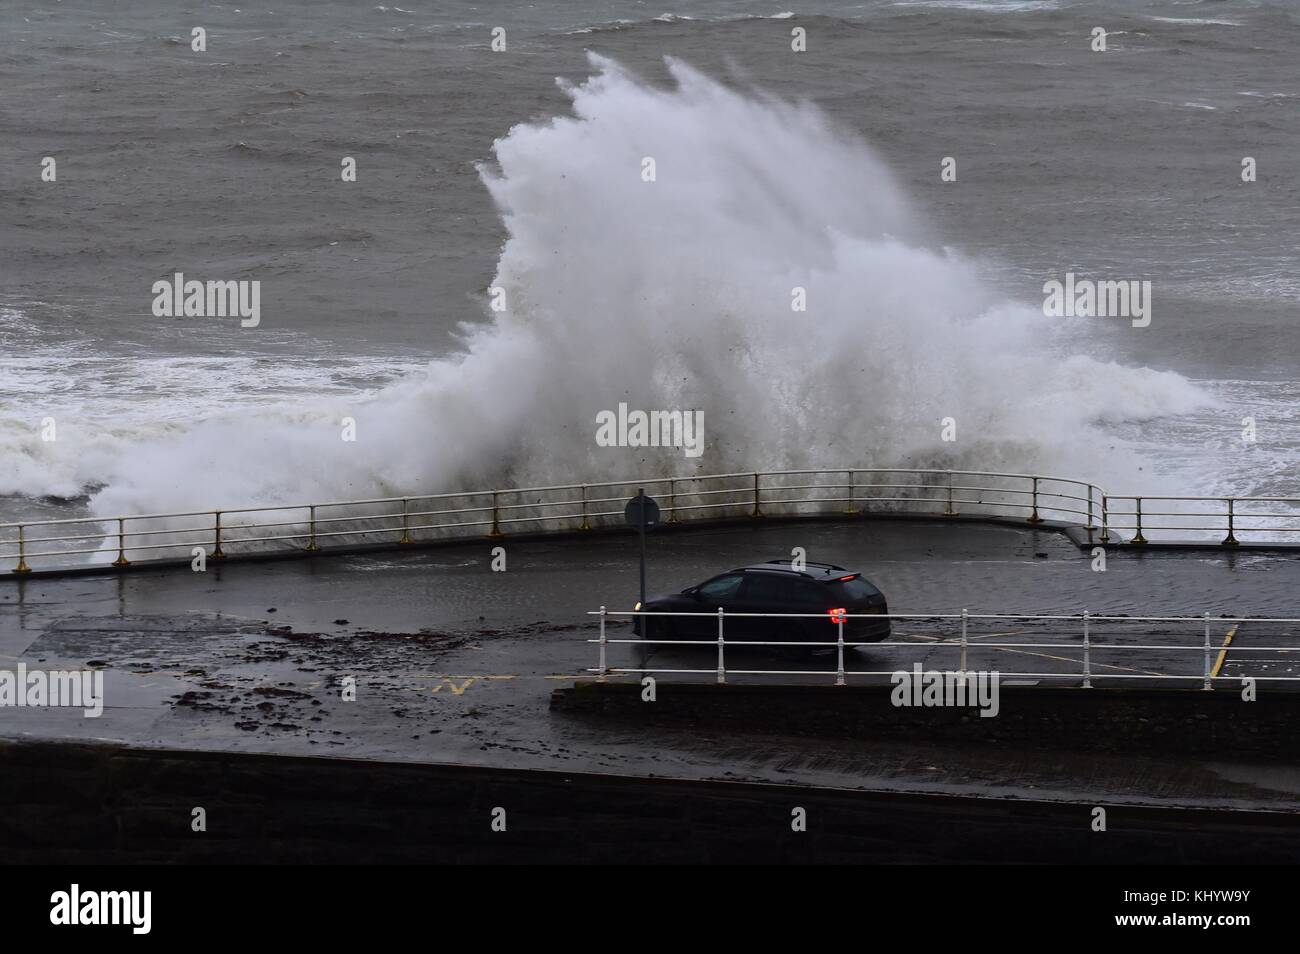 Aberystwyth Wales UK, Wednesday 22 November 2017 UK Weather: High tides and strong winds, gusting up to 50 mph, Stock Photo